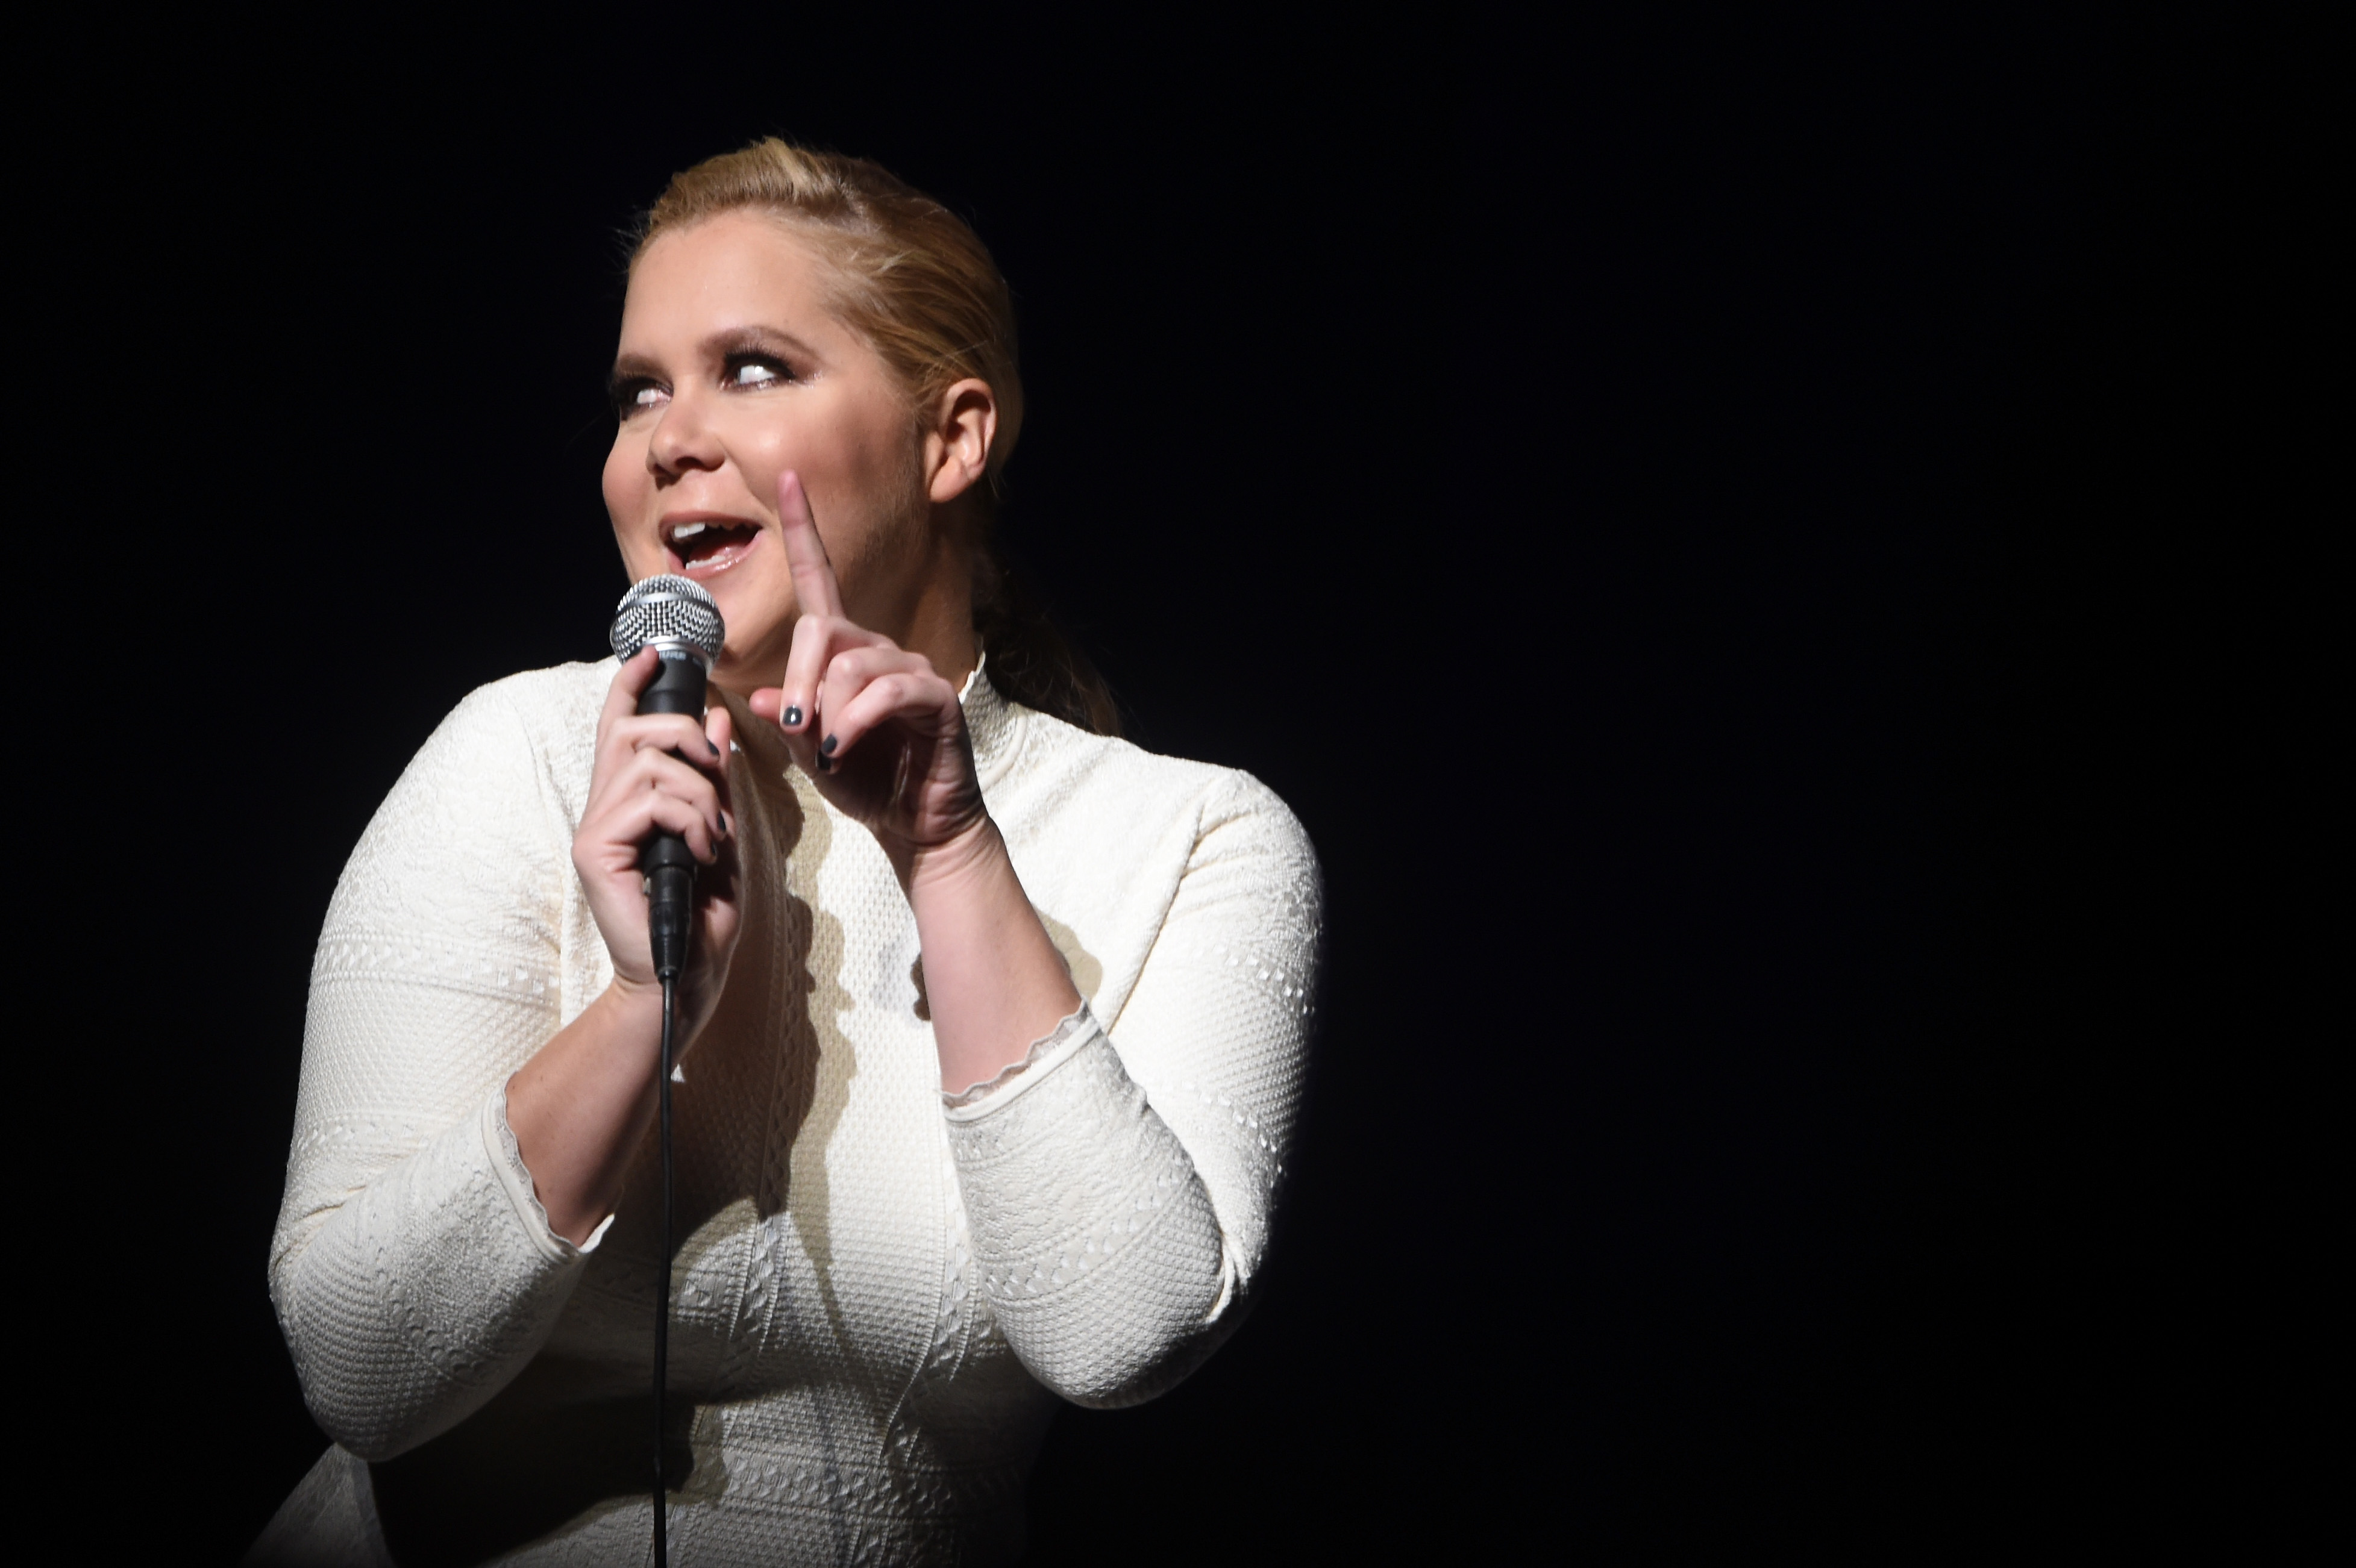 Amy Schumer facts